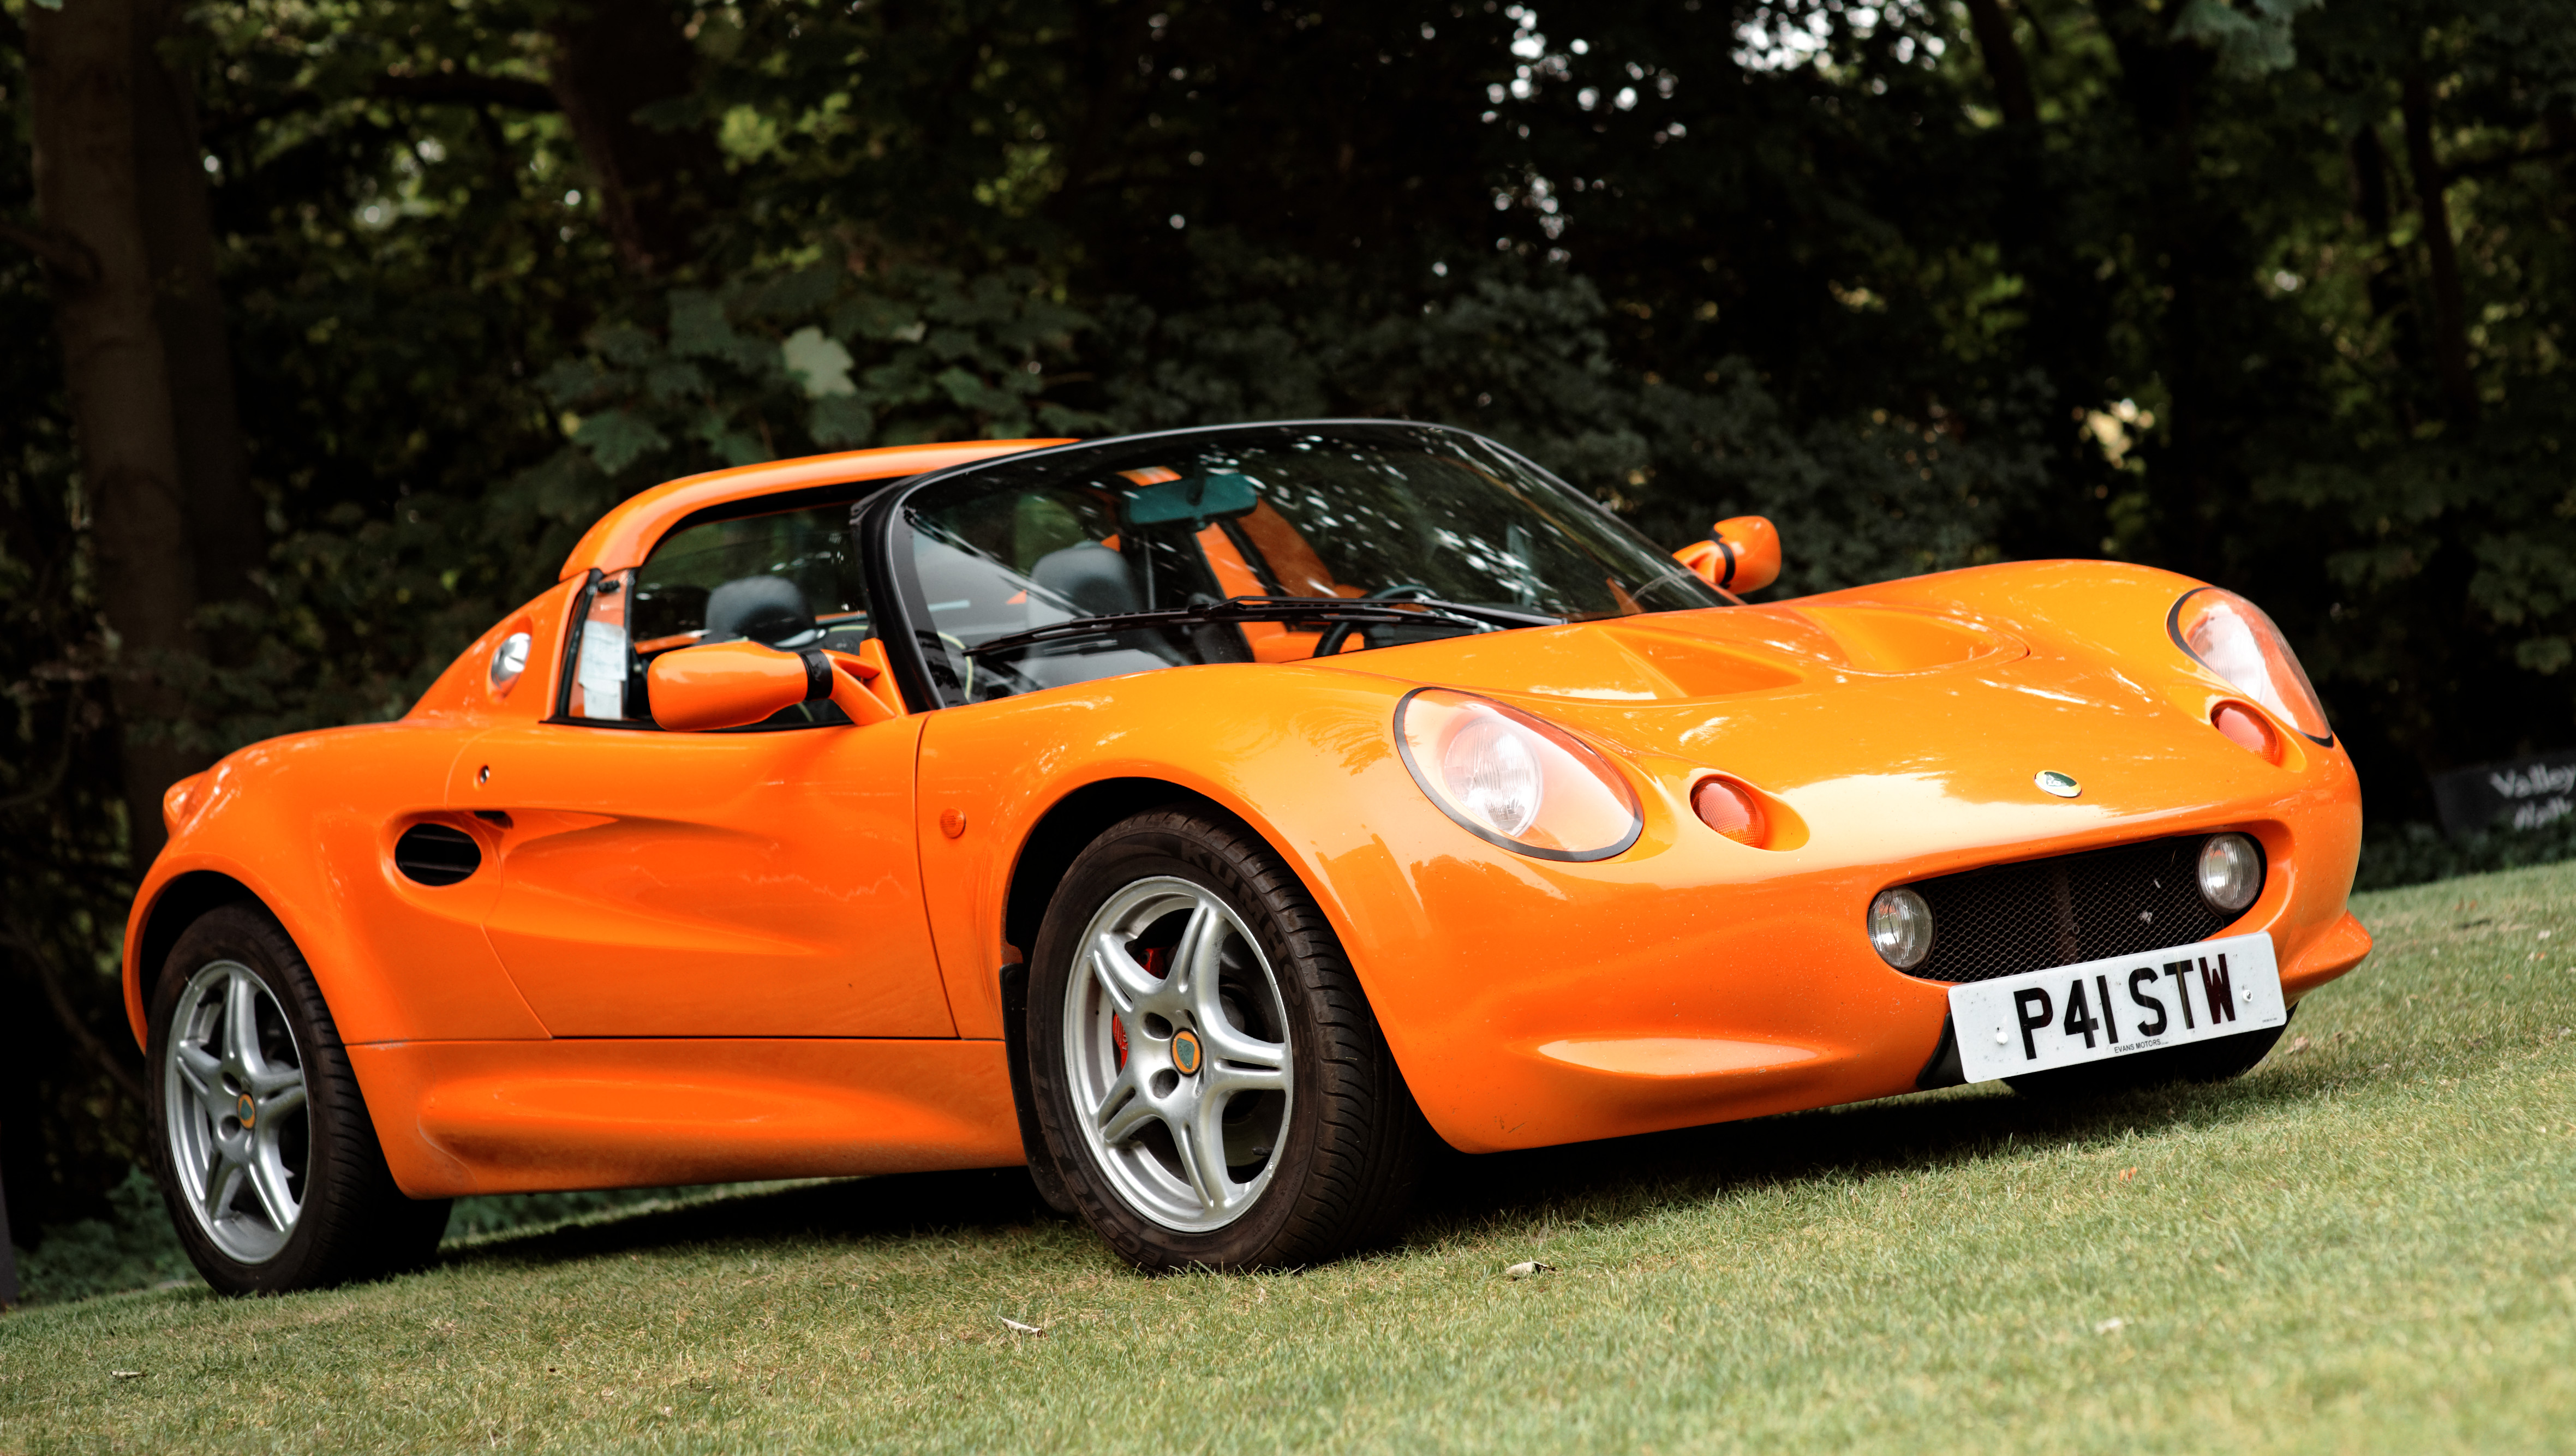 1995 lotus elise pictures information and specs auto database lotus elise 1995 pictures 4 vanachro Image collections